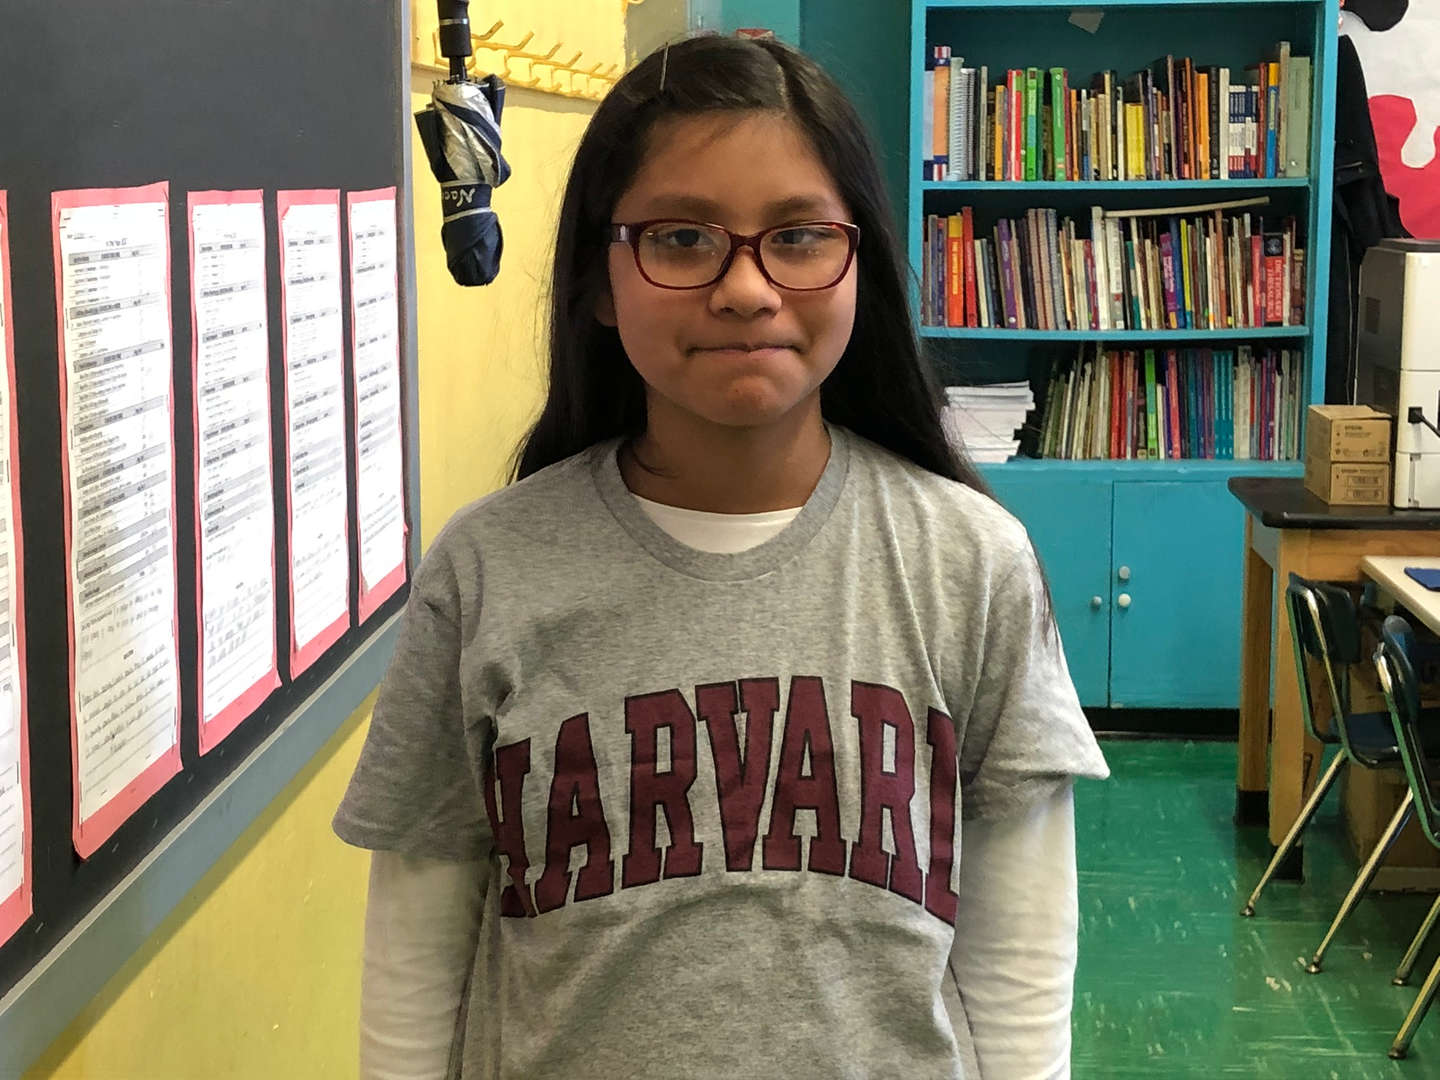 Student showing off her Harvard University t-shirt.